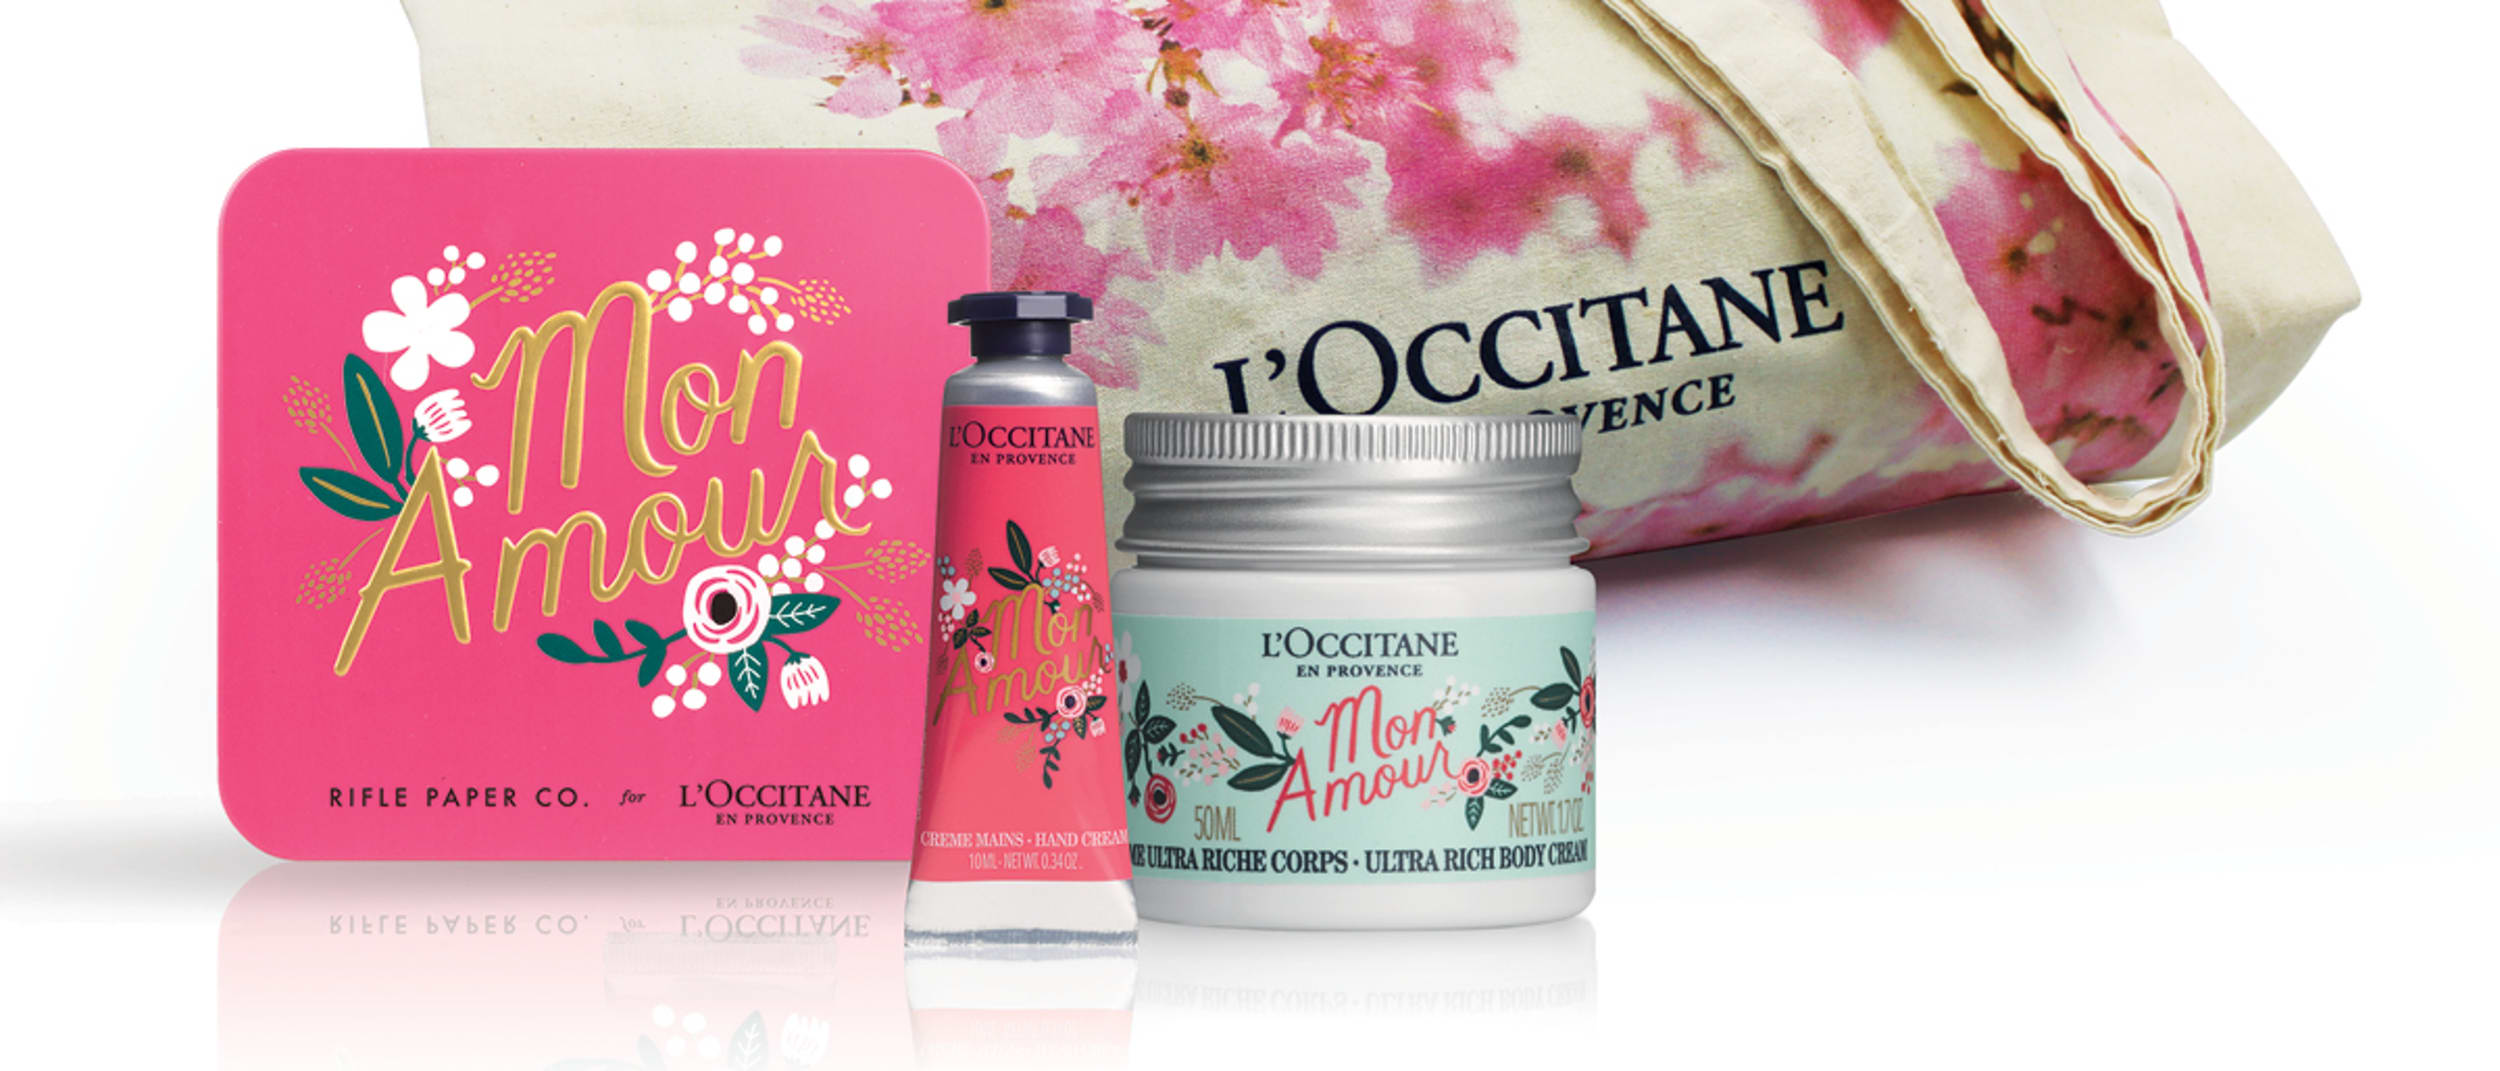 L'OCCITANE: your exclusive tote bag for $25